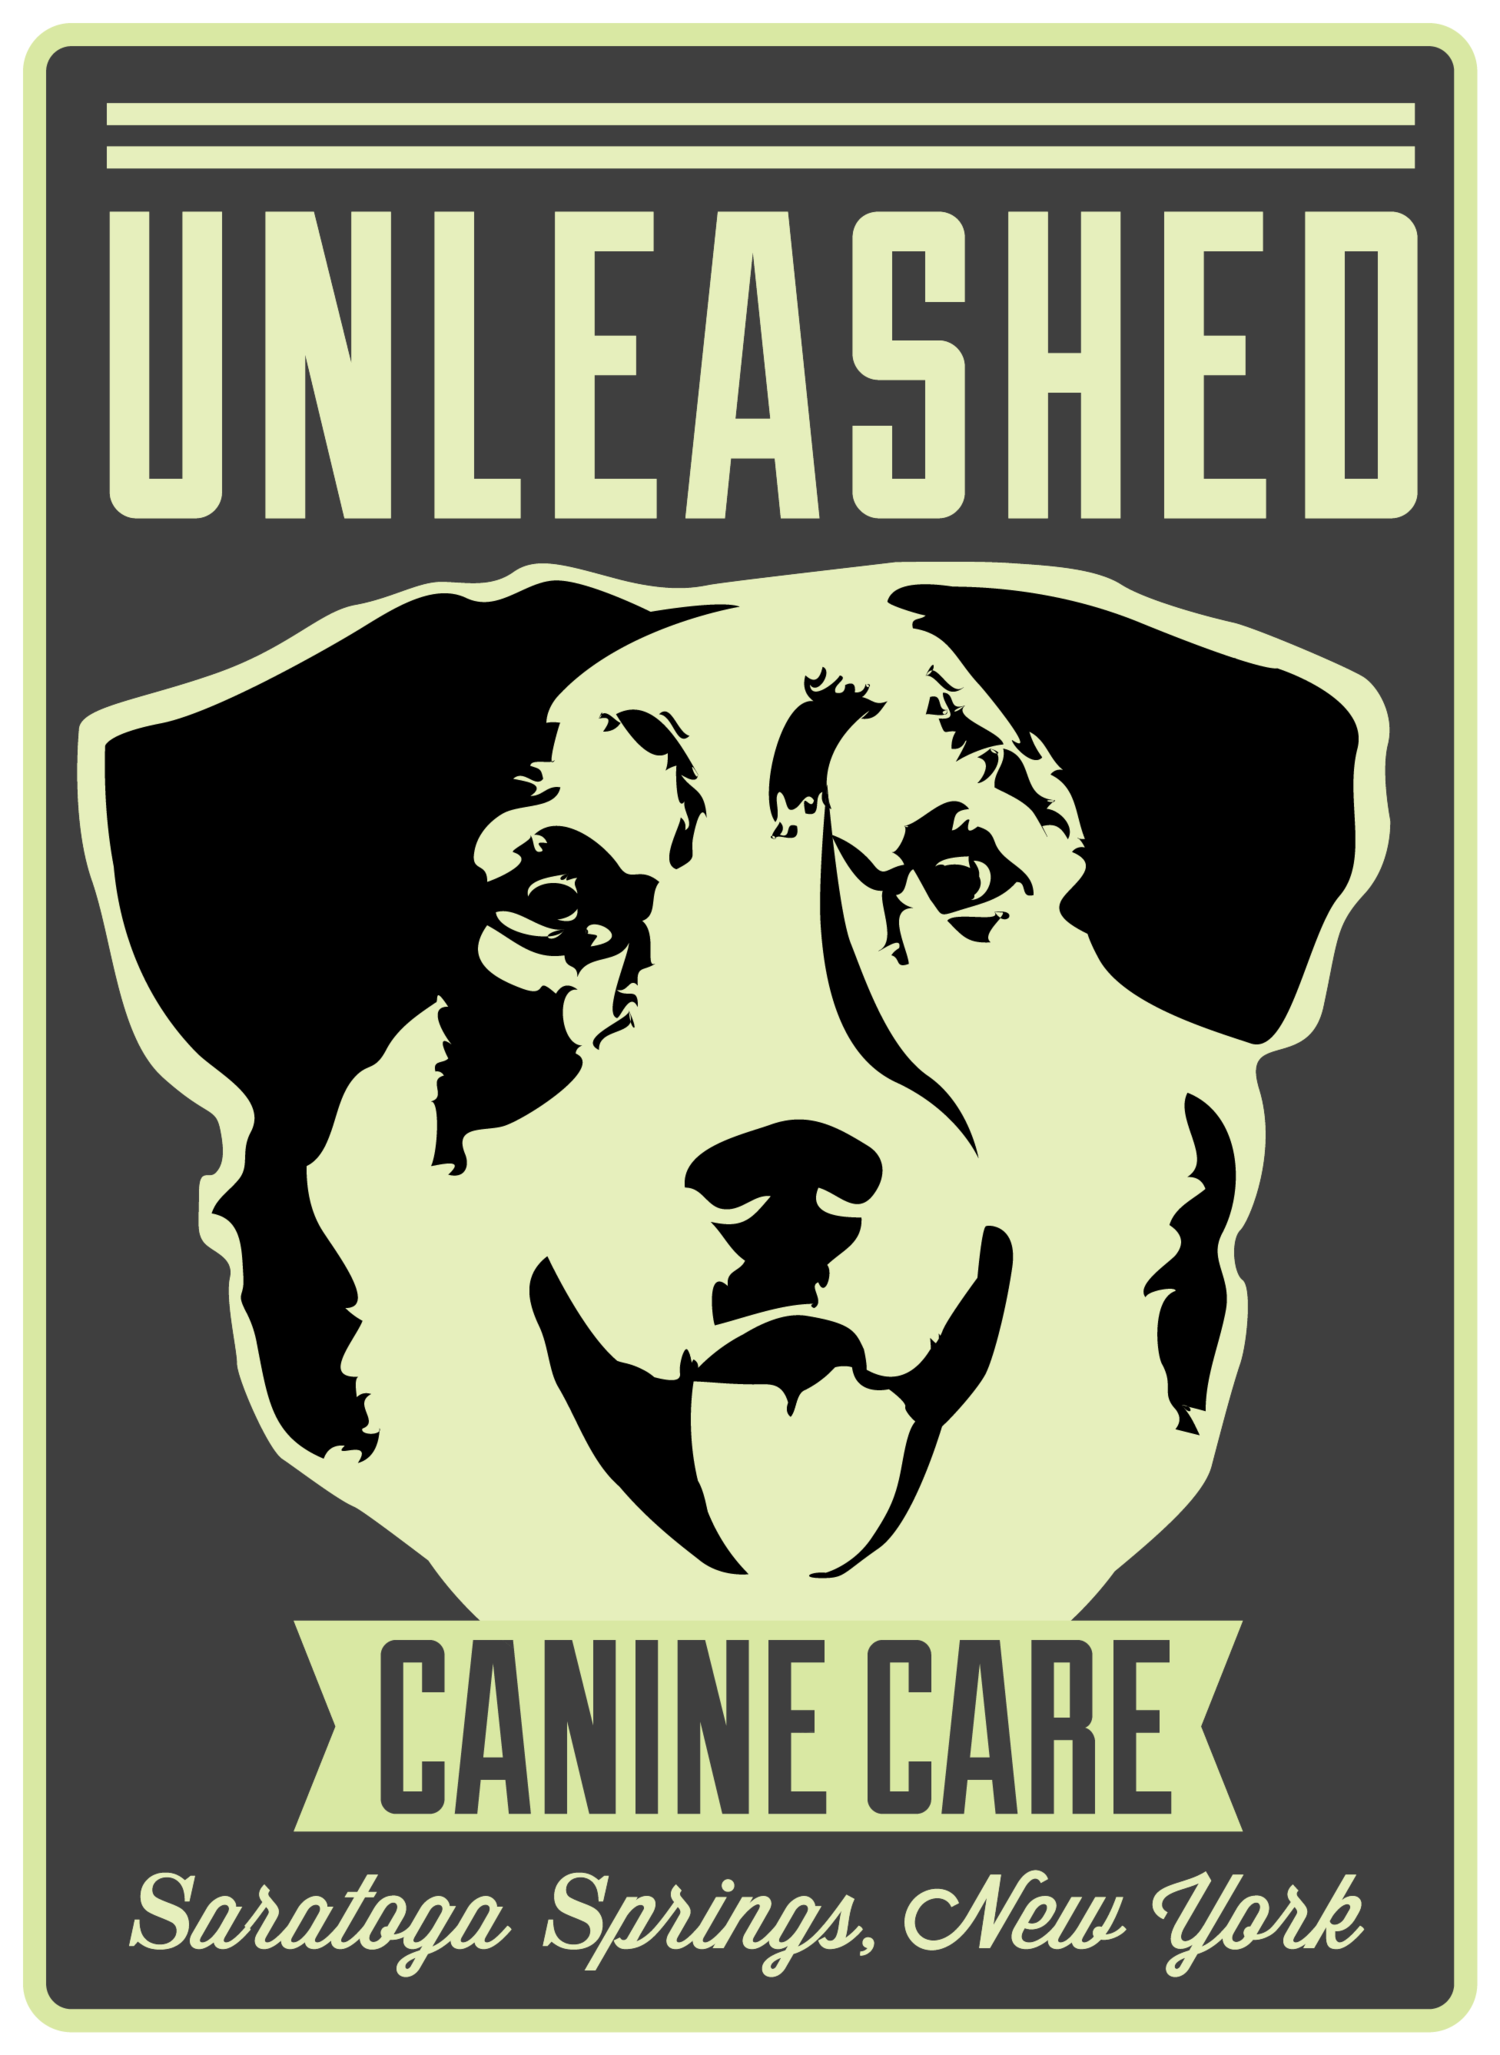 Unleashed Canine Care, LLC